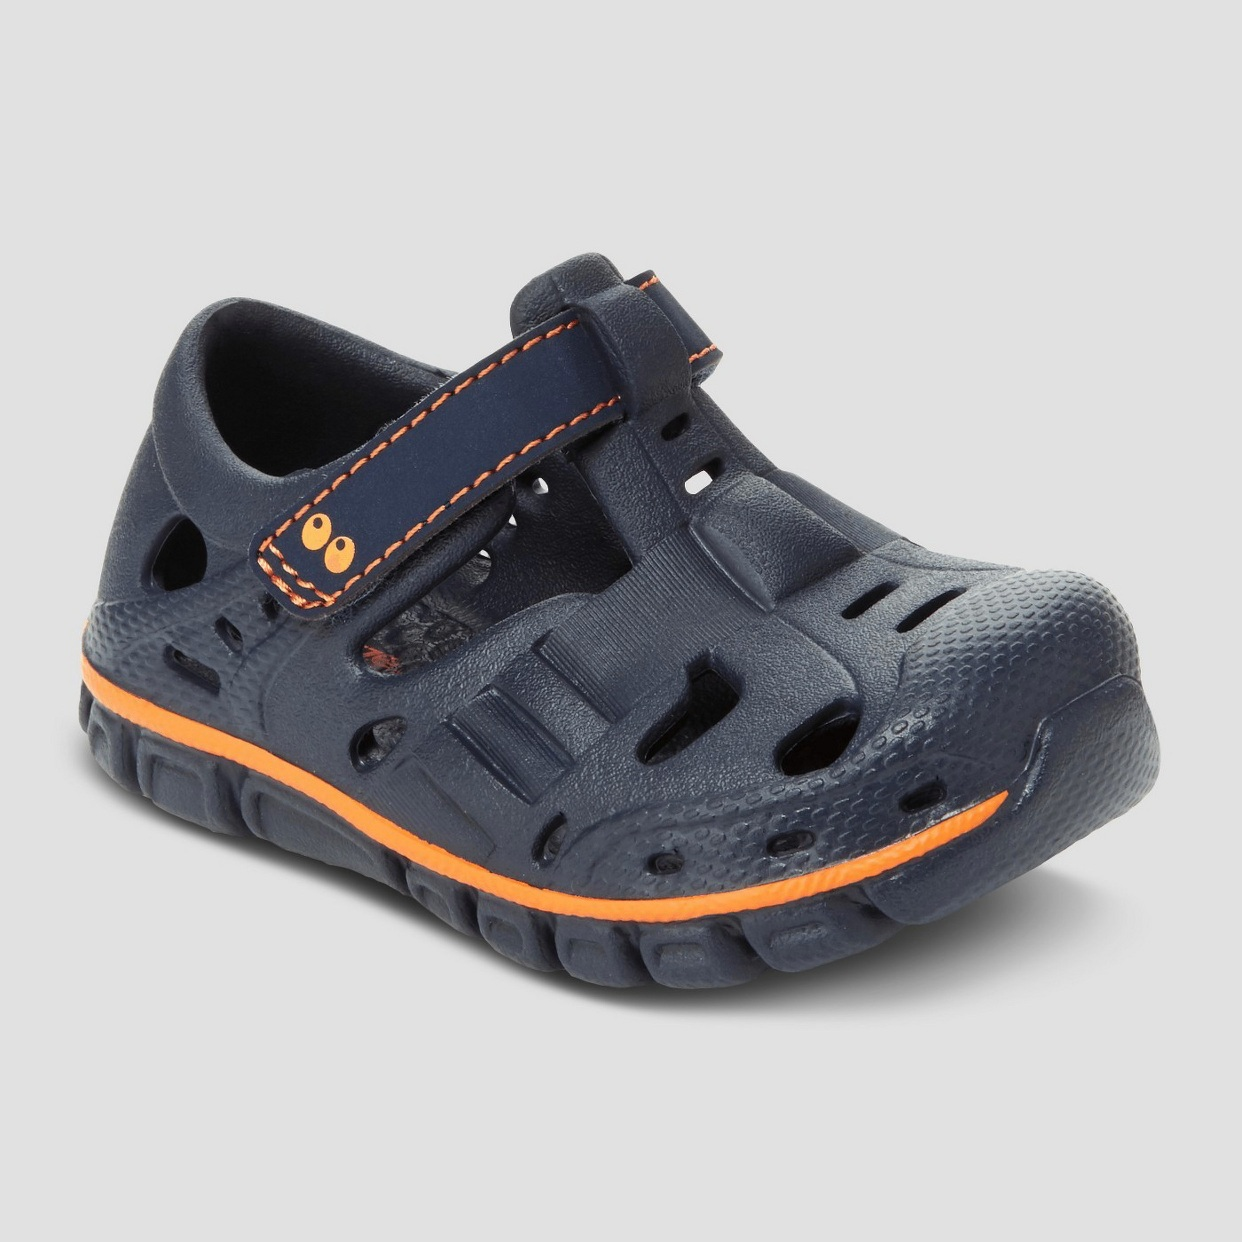 - Disclaimer- Boys shoes are so much easier than girl's shoes! Caleb is close to walking and I'm really liking these for him this summer!Find them here.